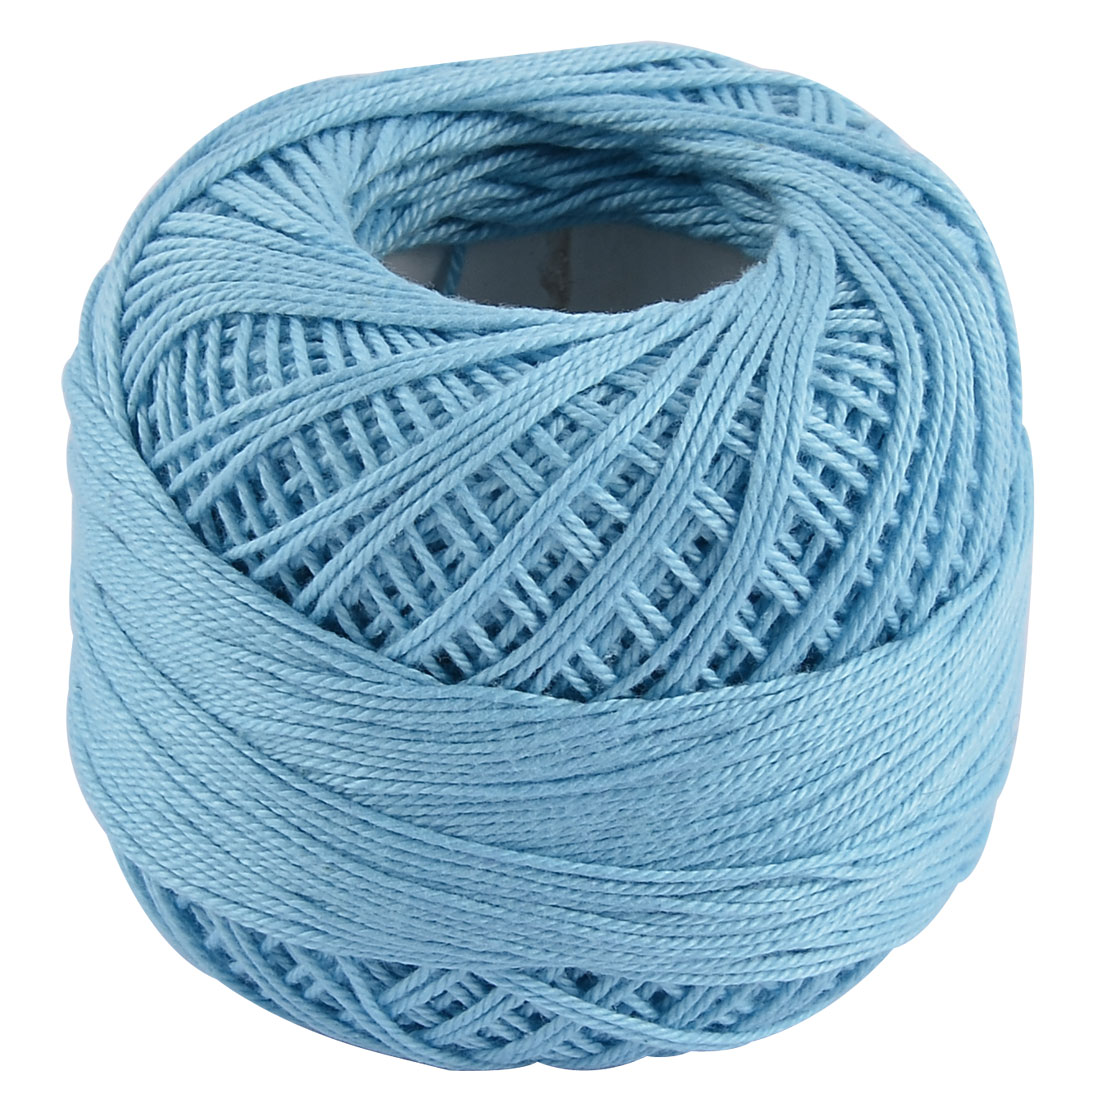 Cotton Hand Knitting Weaving Tatting Crochet Scarf Glove Cap Yarn Thread Cyan